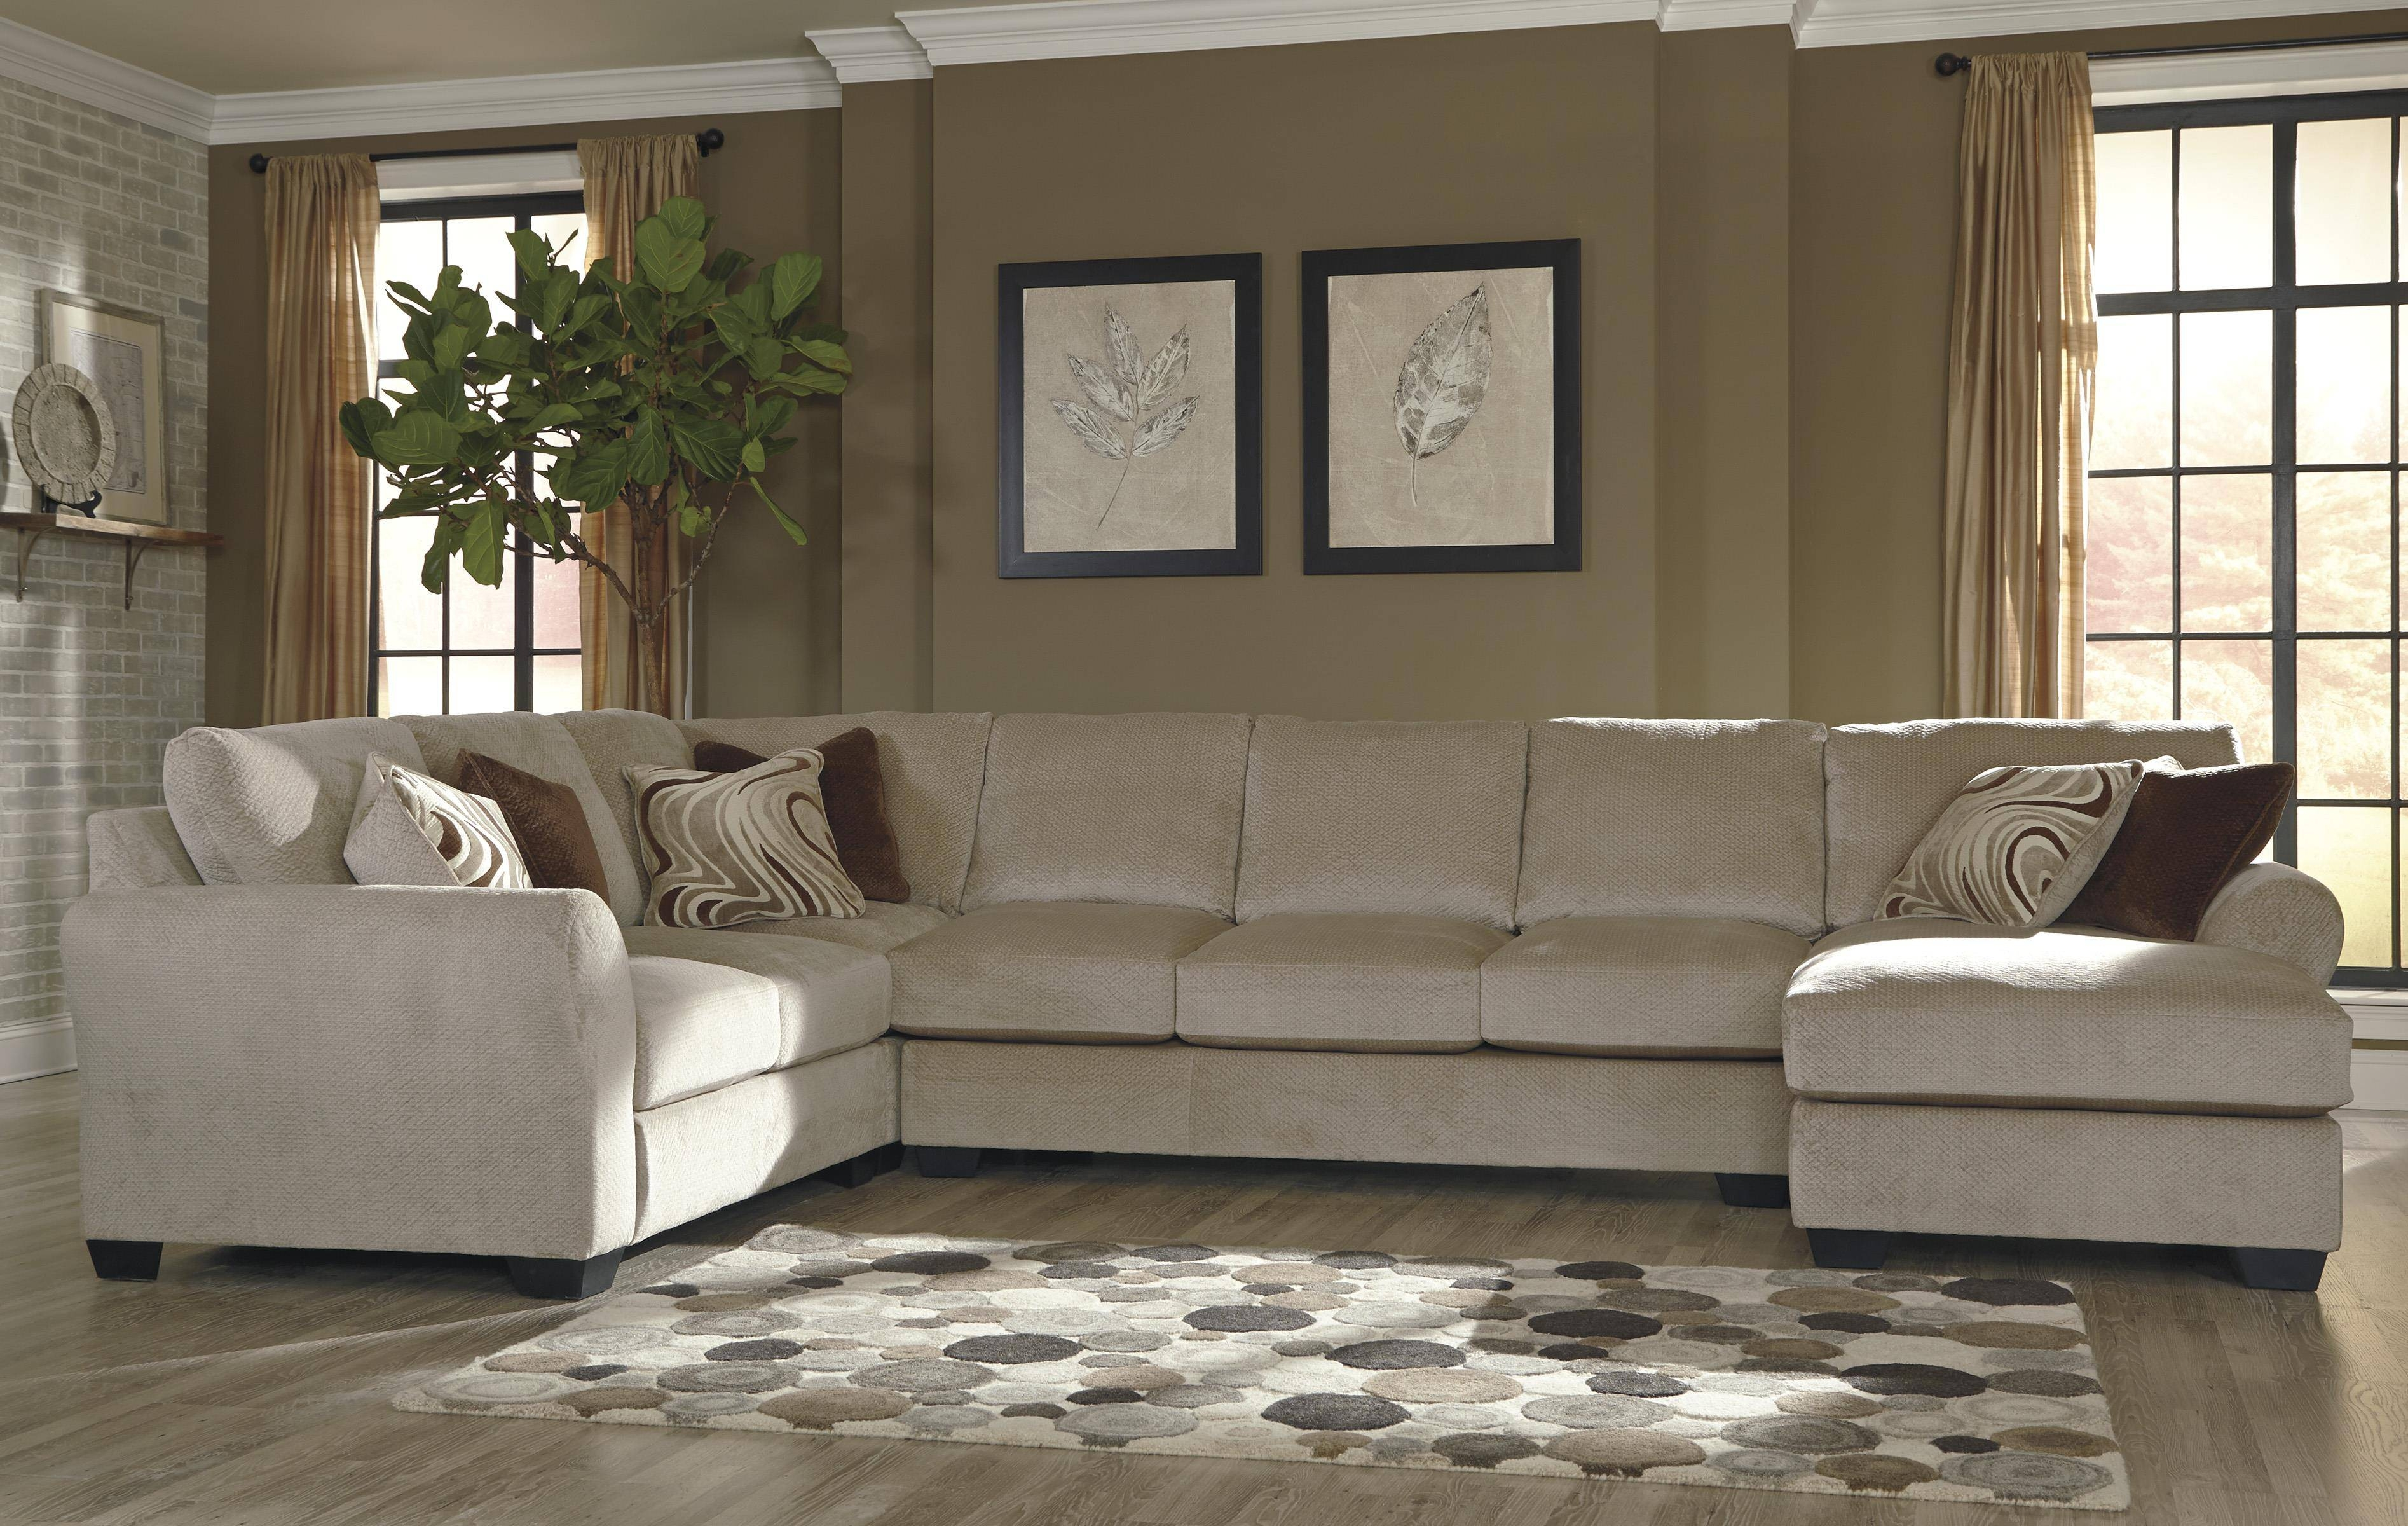 Benchcraft Hazes 4-Piece Sectional W/ Armless Sofa & Right Chaise throughout Armless Sectional Sofa (Image 3 of 30)